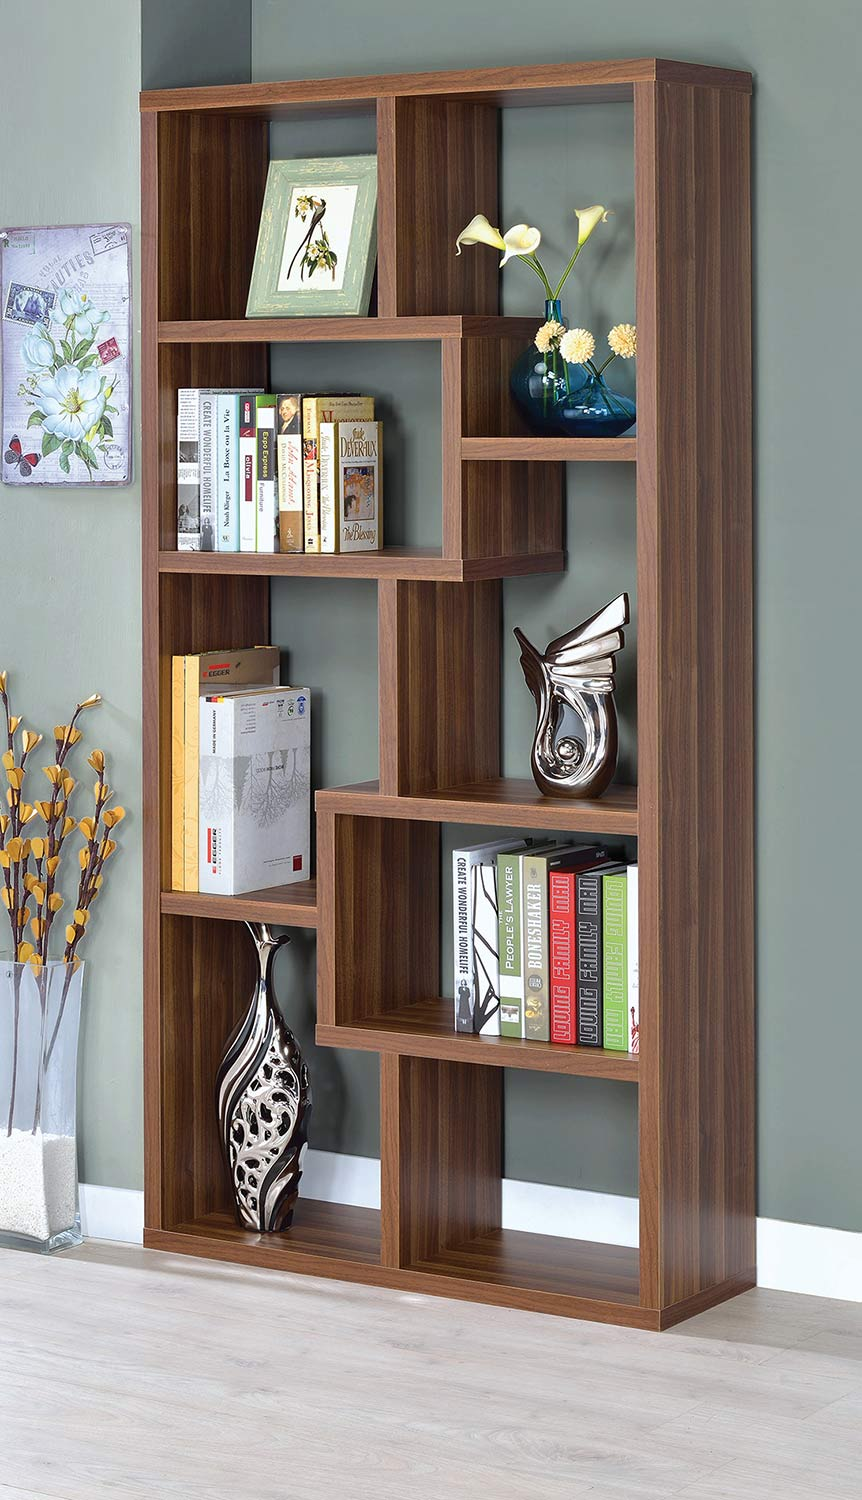 Coaster 801138 Bookcase - Walnut